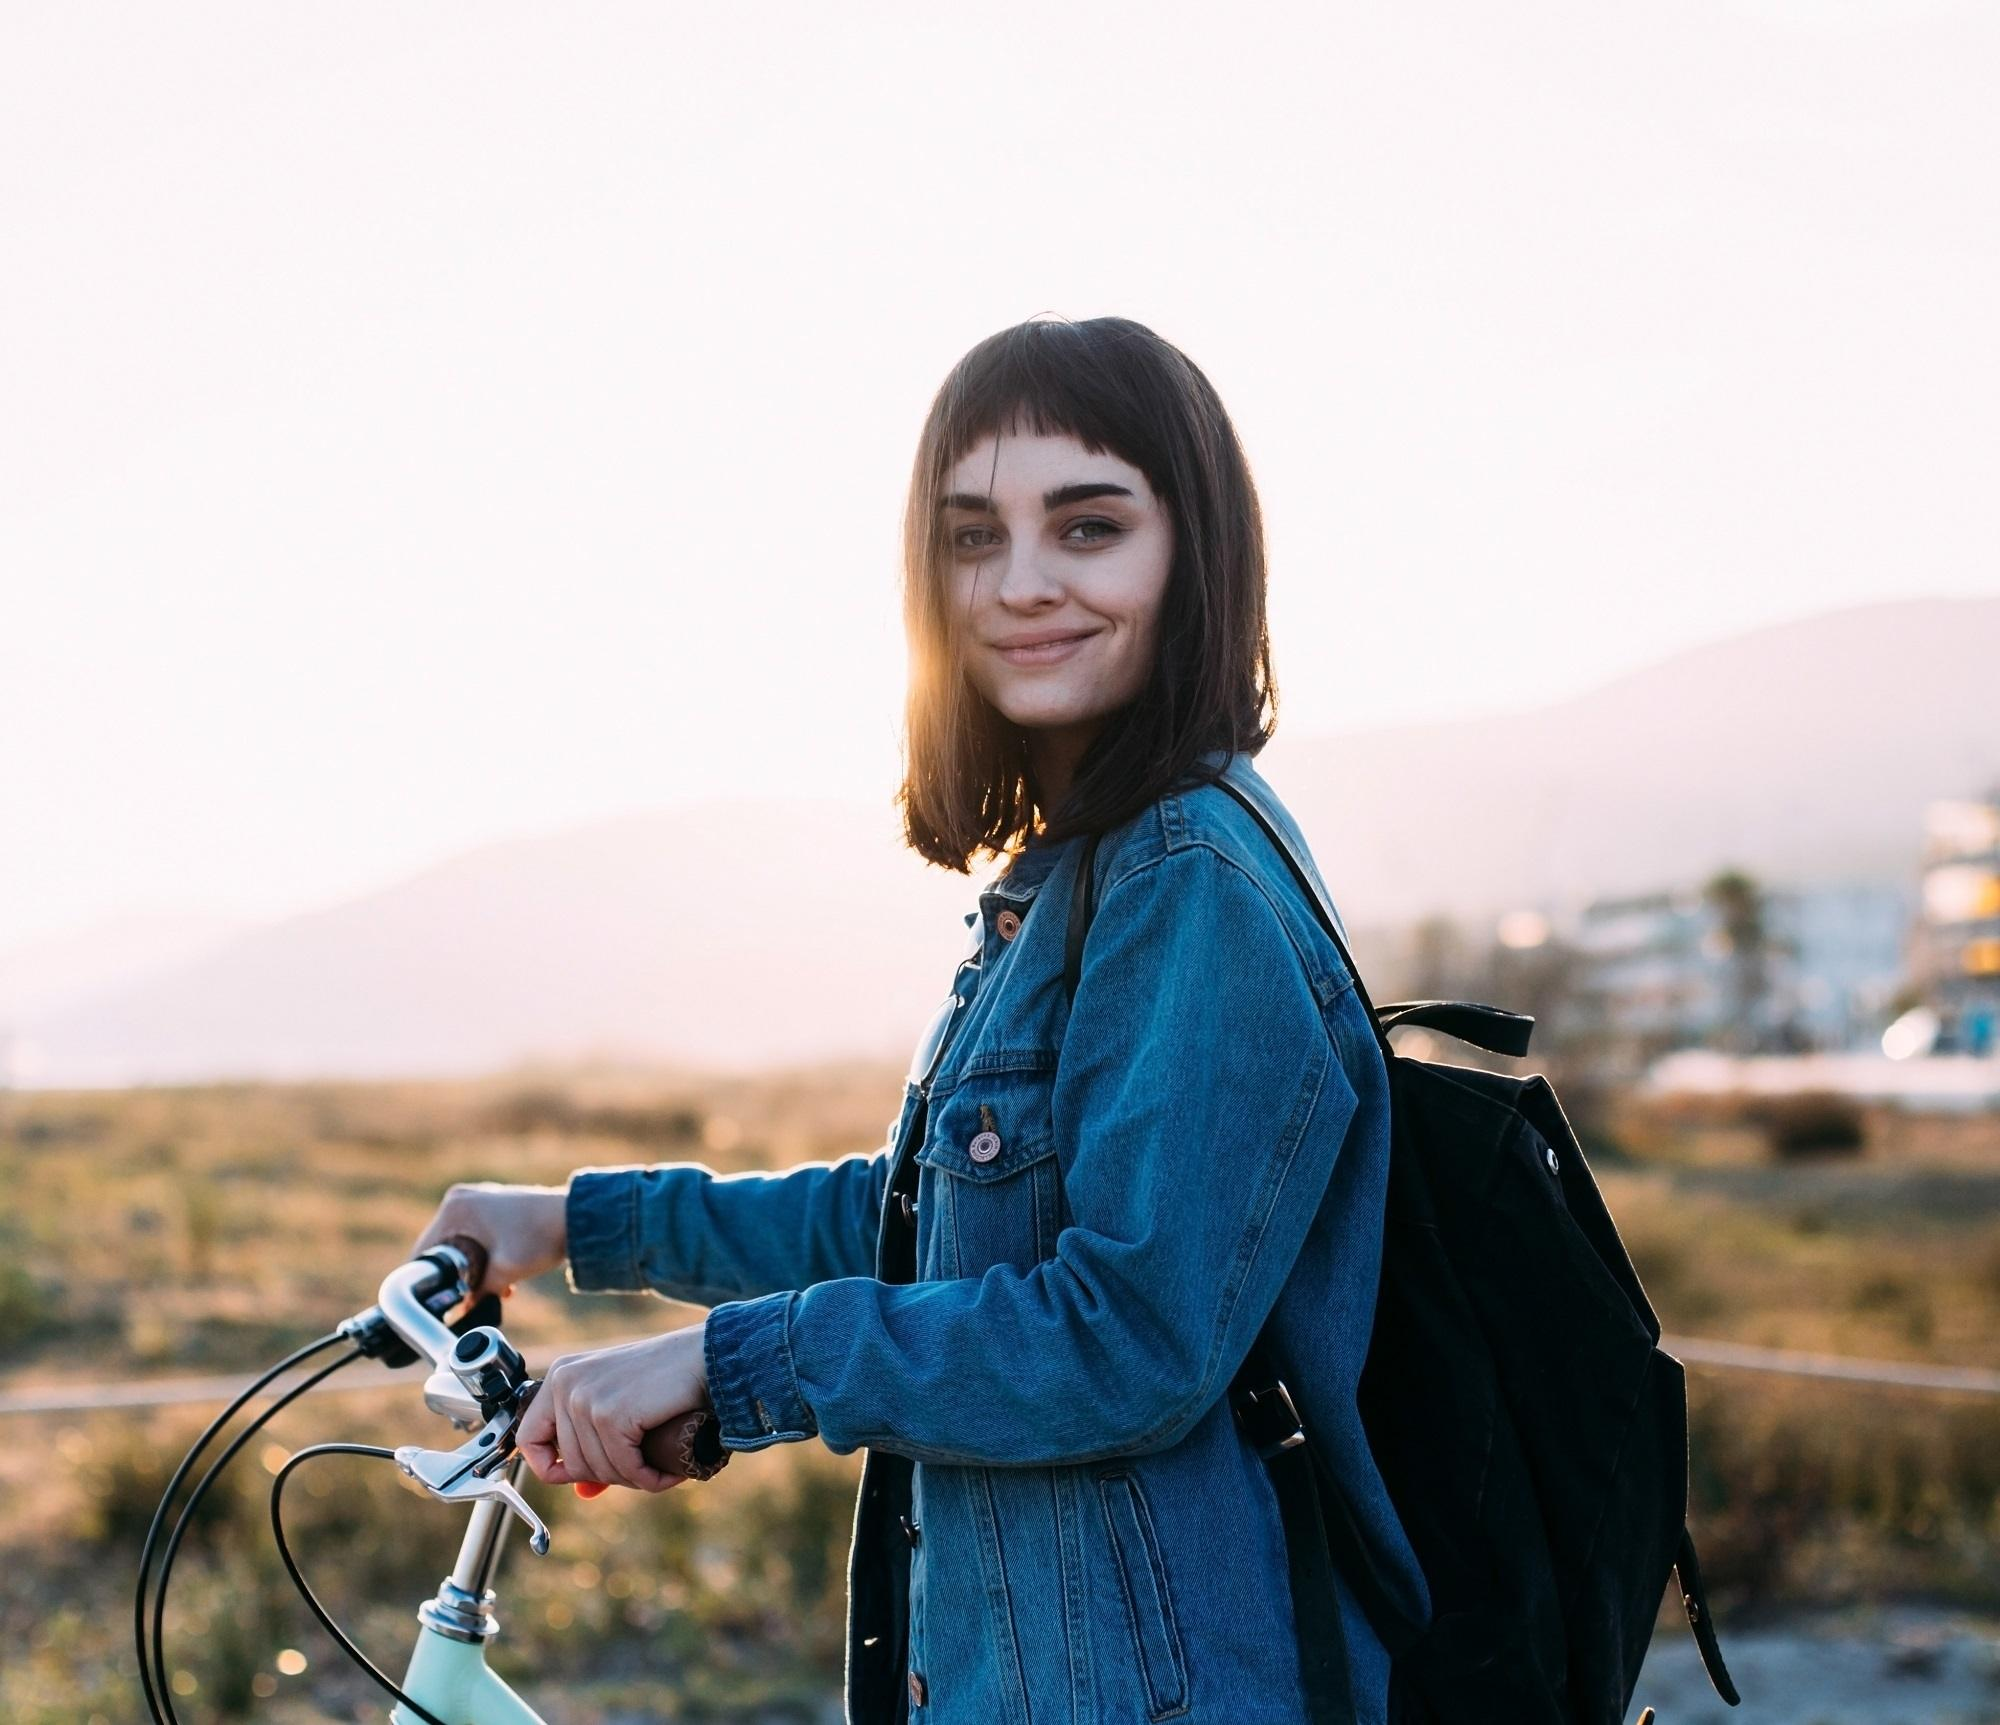 Blunt haircut: Girl with black lob and baby bangs wearing a denim jacket standing next to a bike outdoors